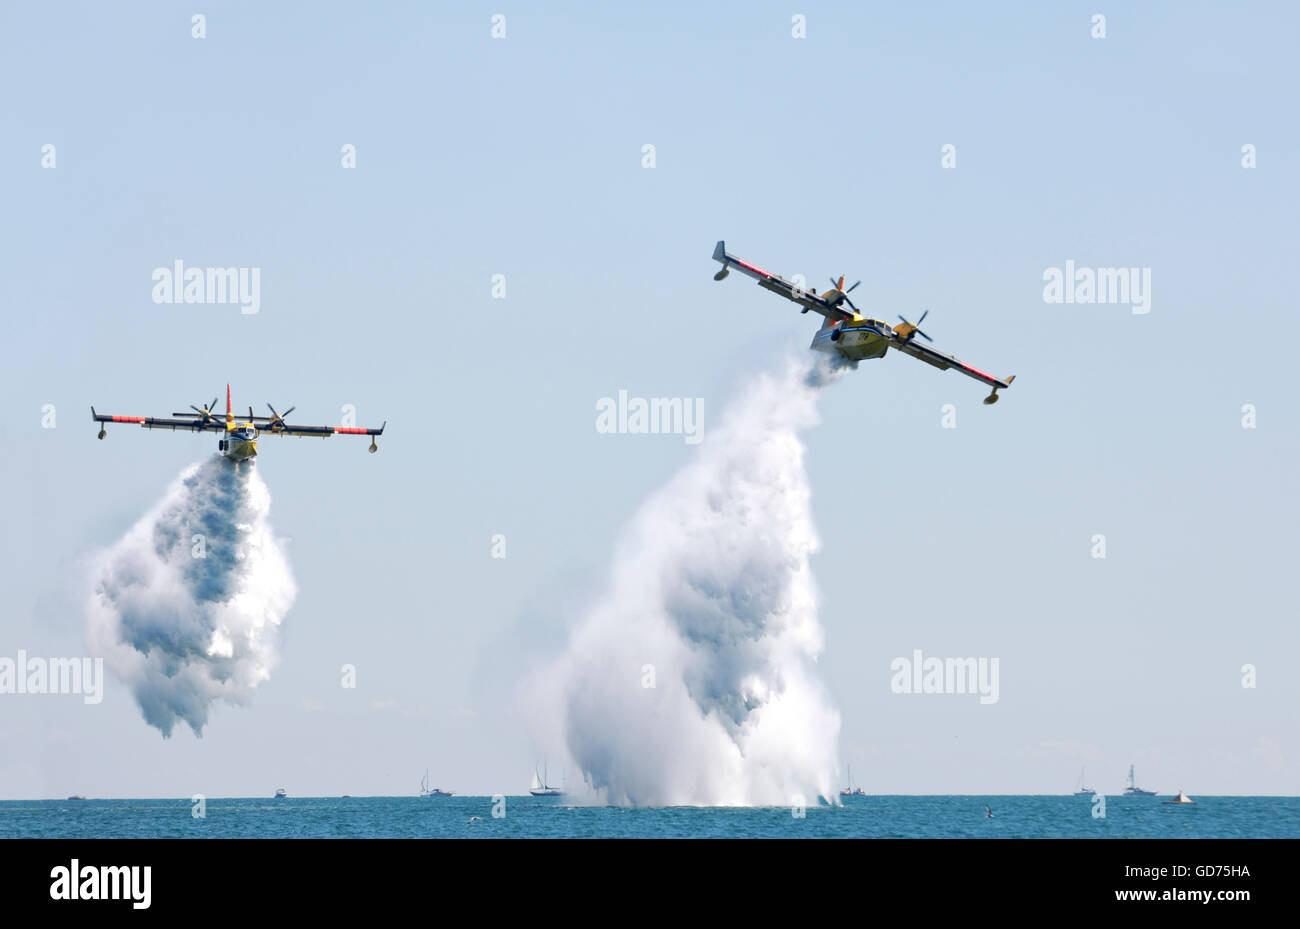 Water Bombers CL-415 firefighting amphibious aircrafts releasing water, Canadian International Air Show, Toronto, - Stock Image